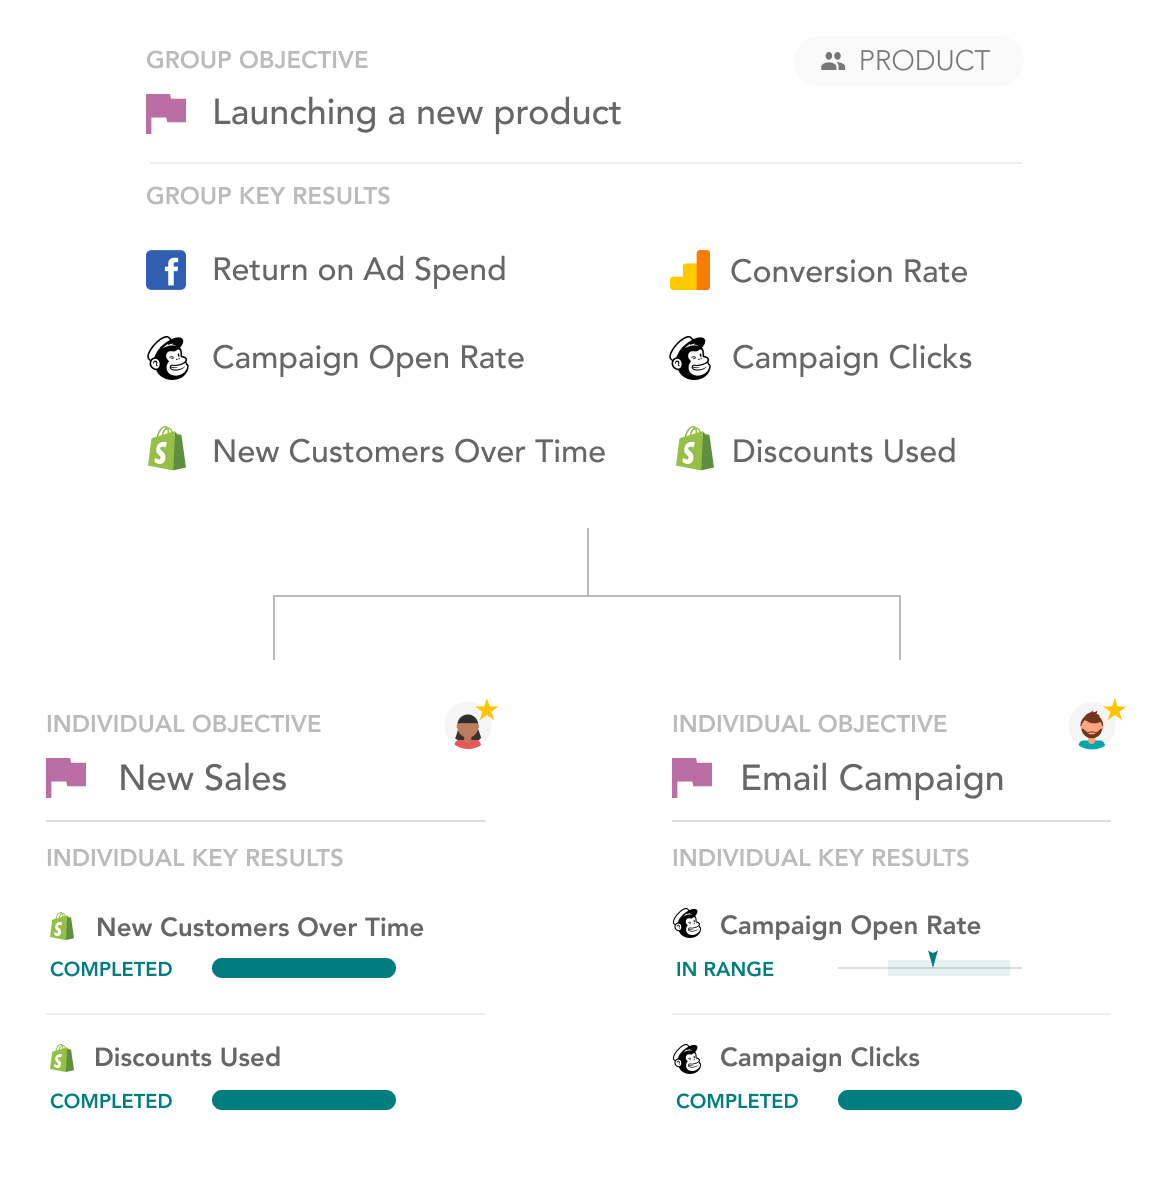 Product - Product Launches